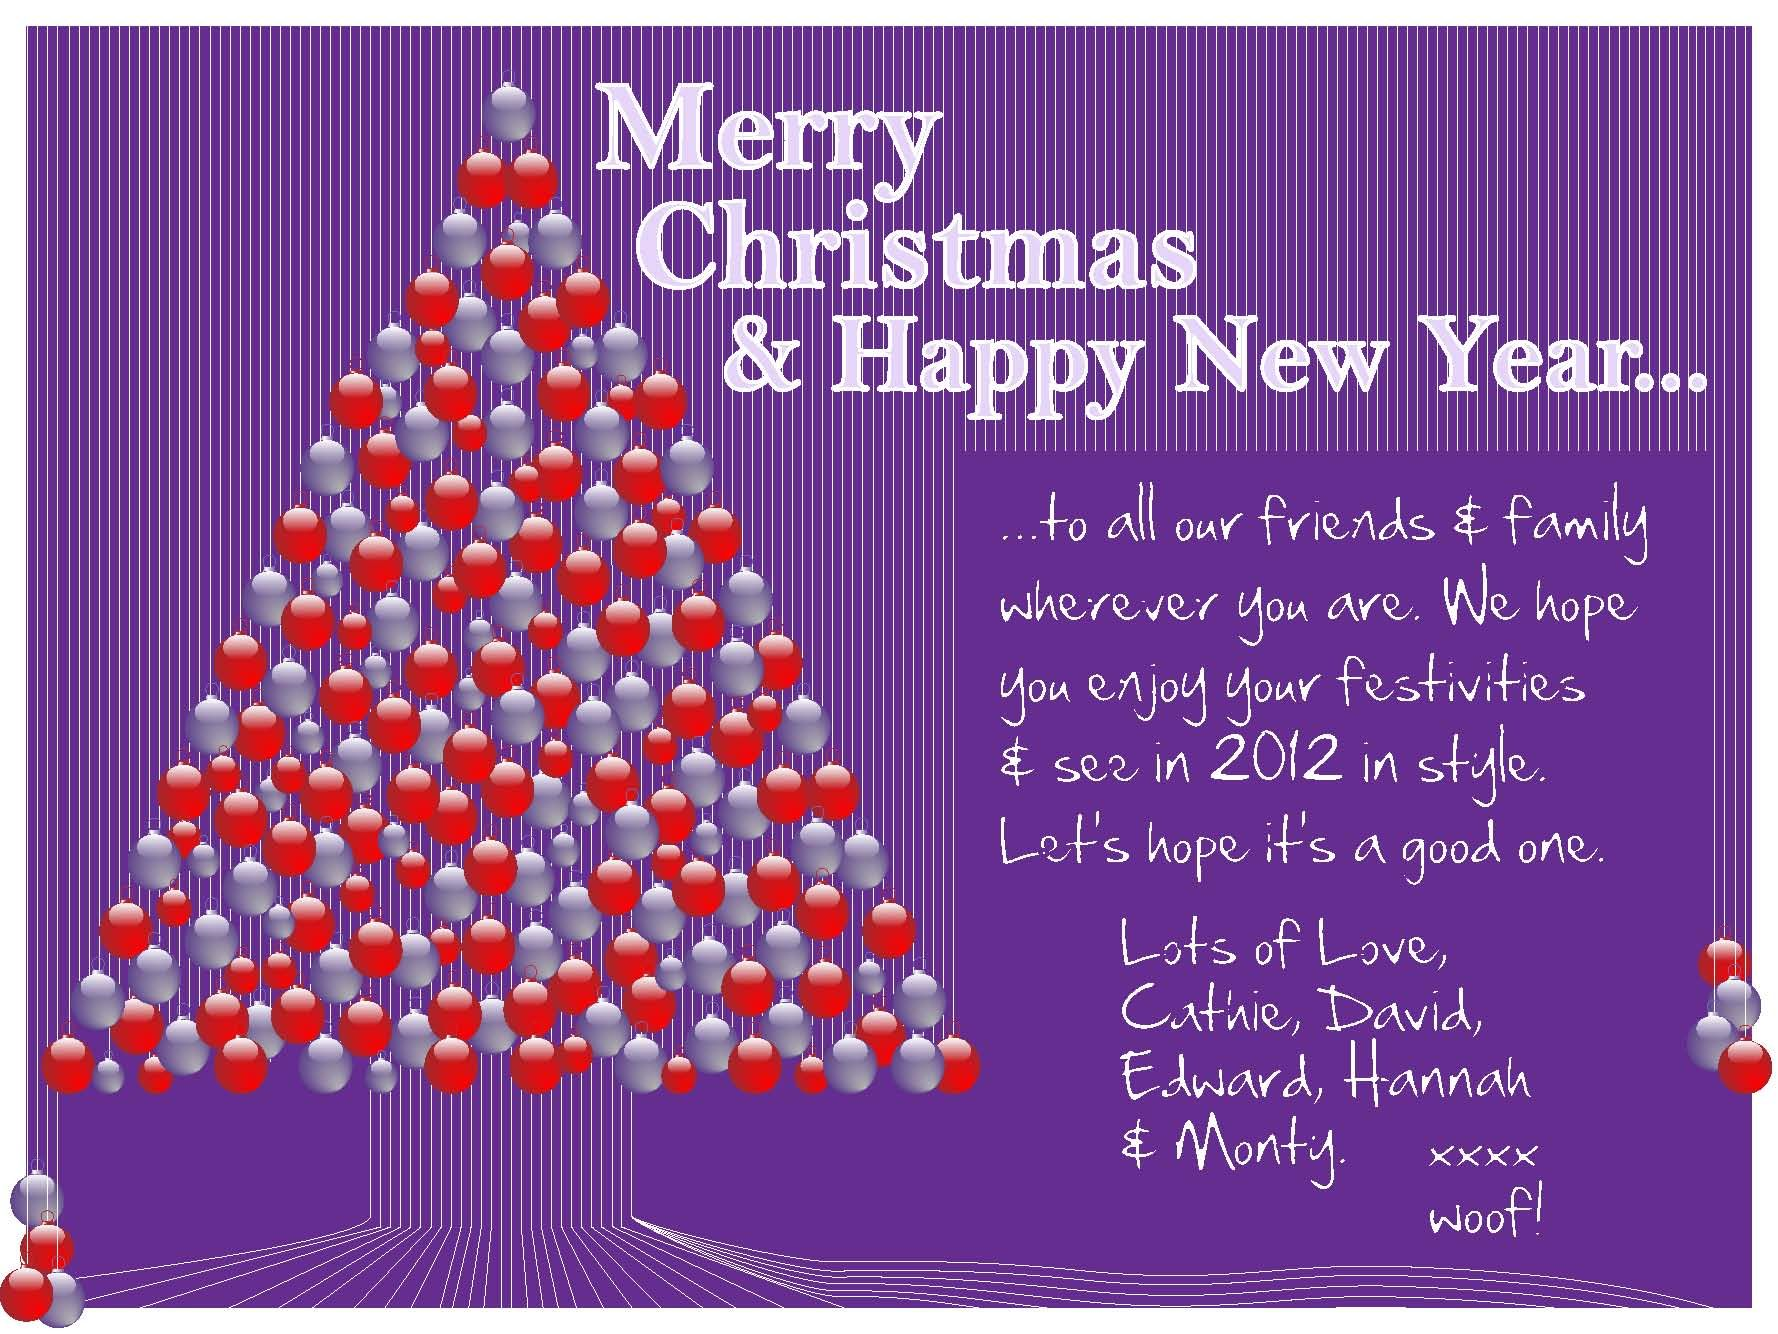 Merry christmas friend quotes 2016 merry christmas quotes wishes merry christmas friend quotes 2016 kristyandbryce Gallery